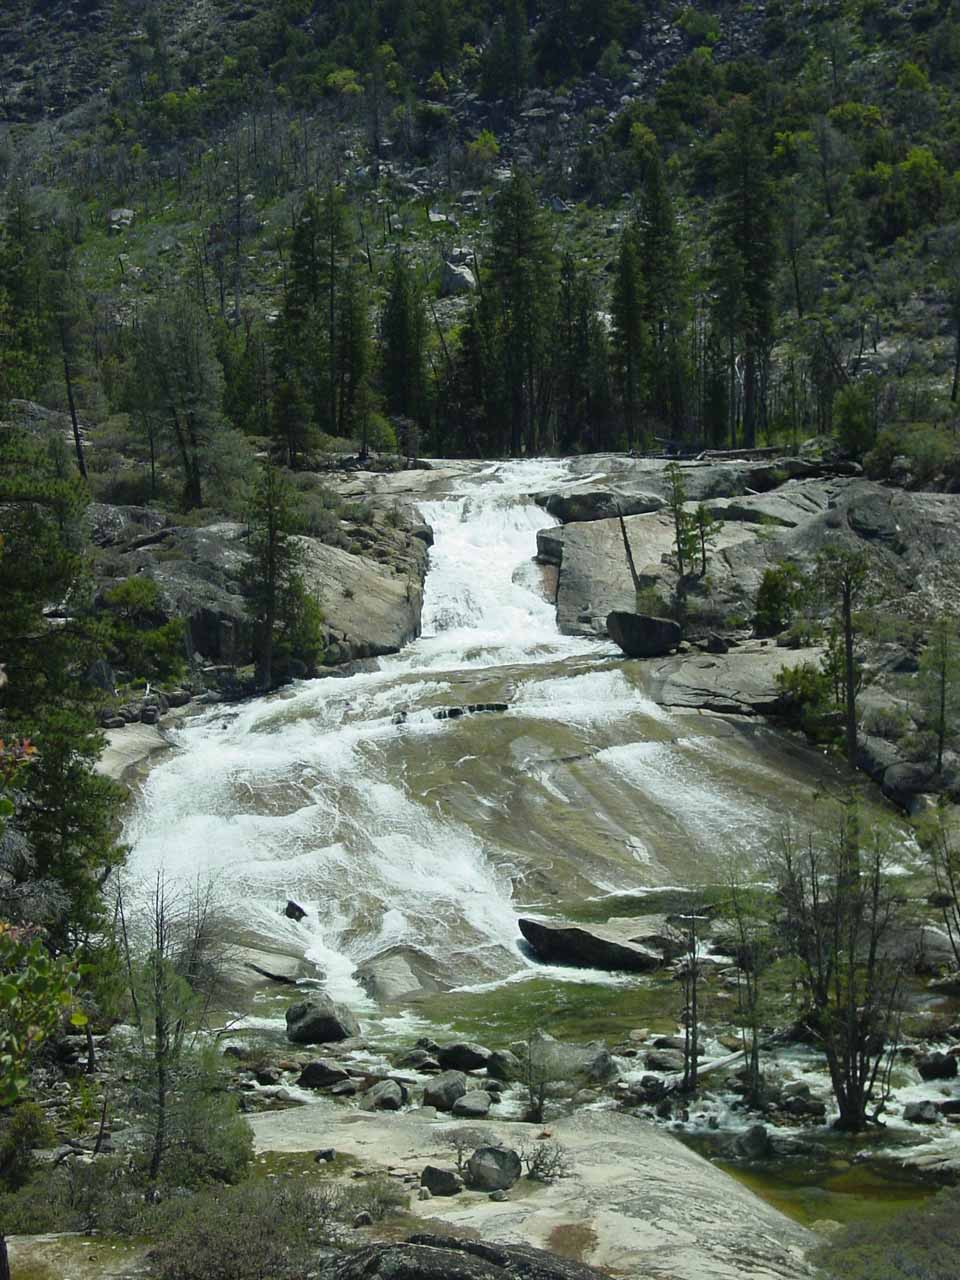 More satisfying look at the first cascade of Rancheria Falls